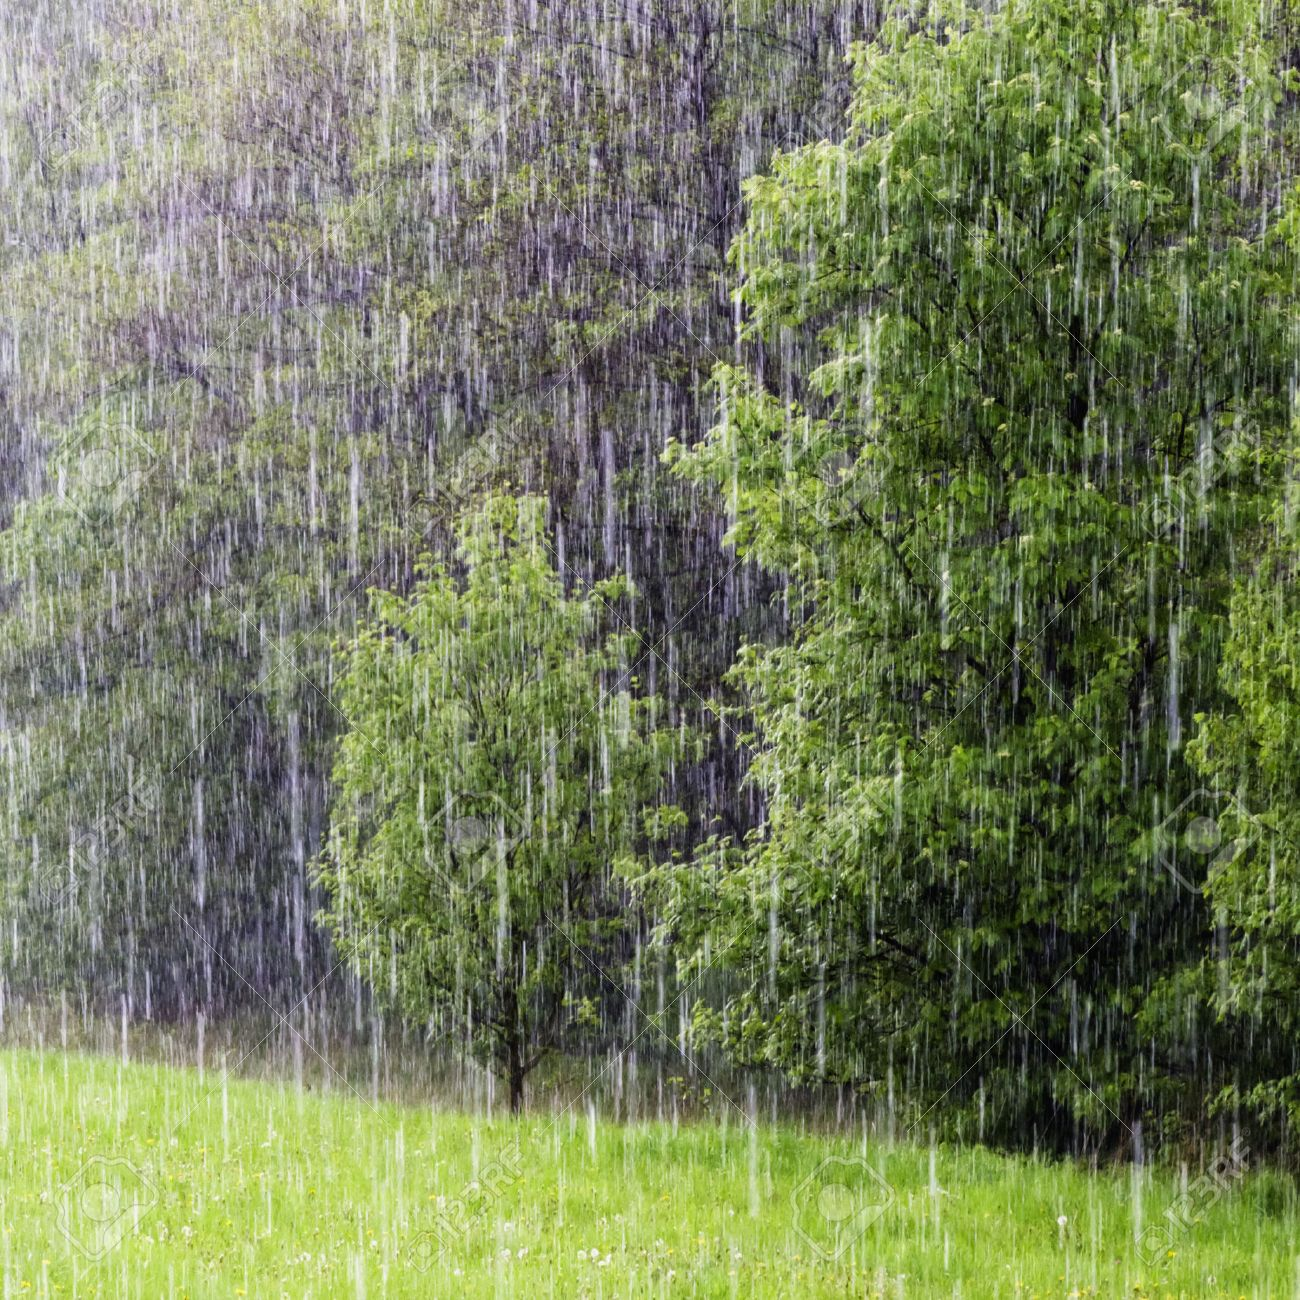 heavy shower stock photos u0026 pictures royalty free heavy shower